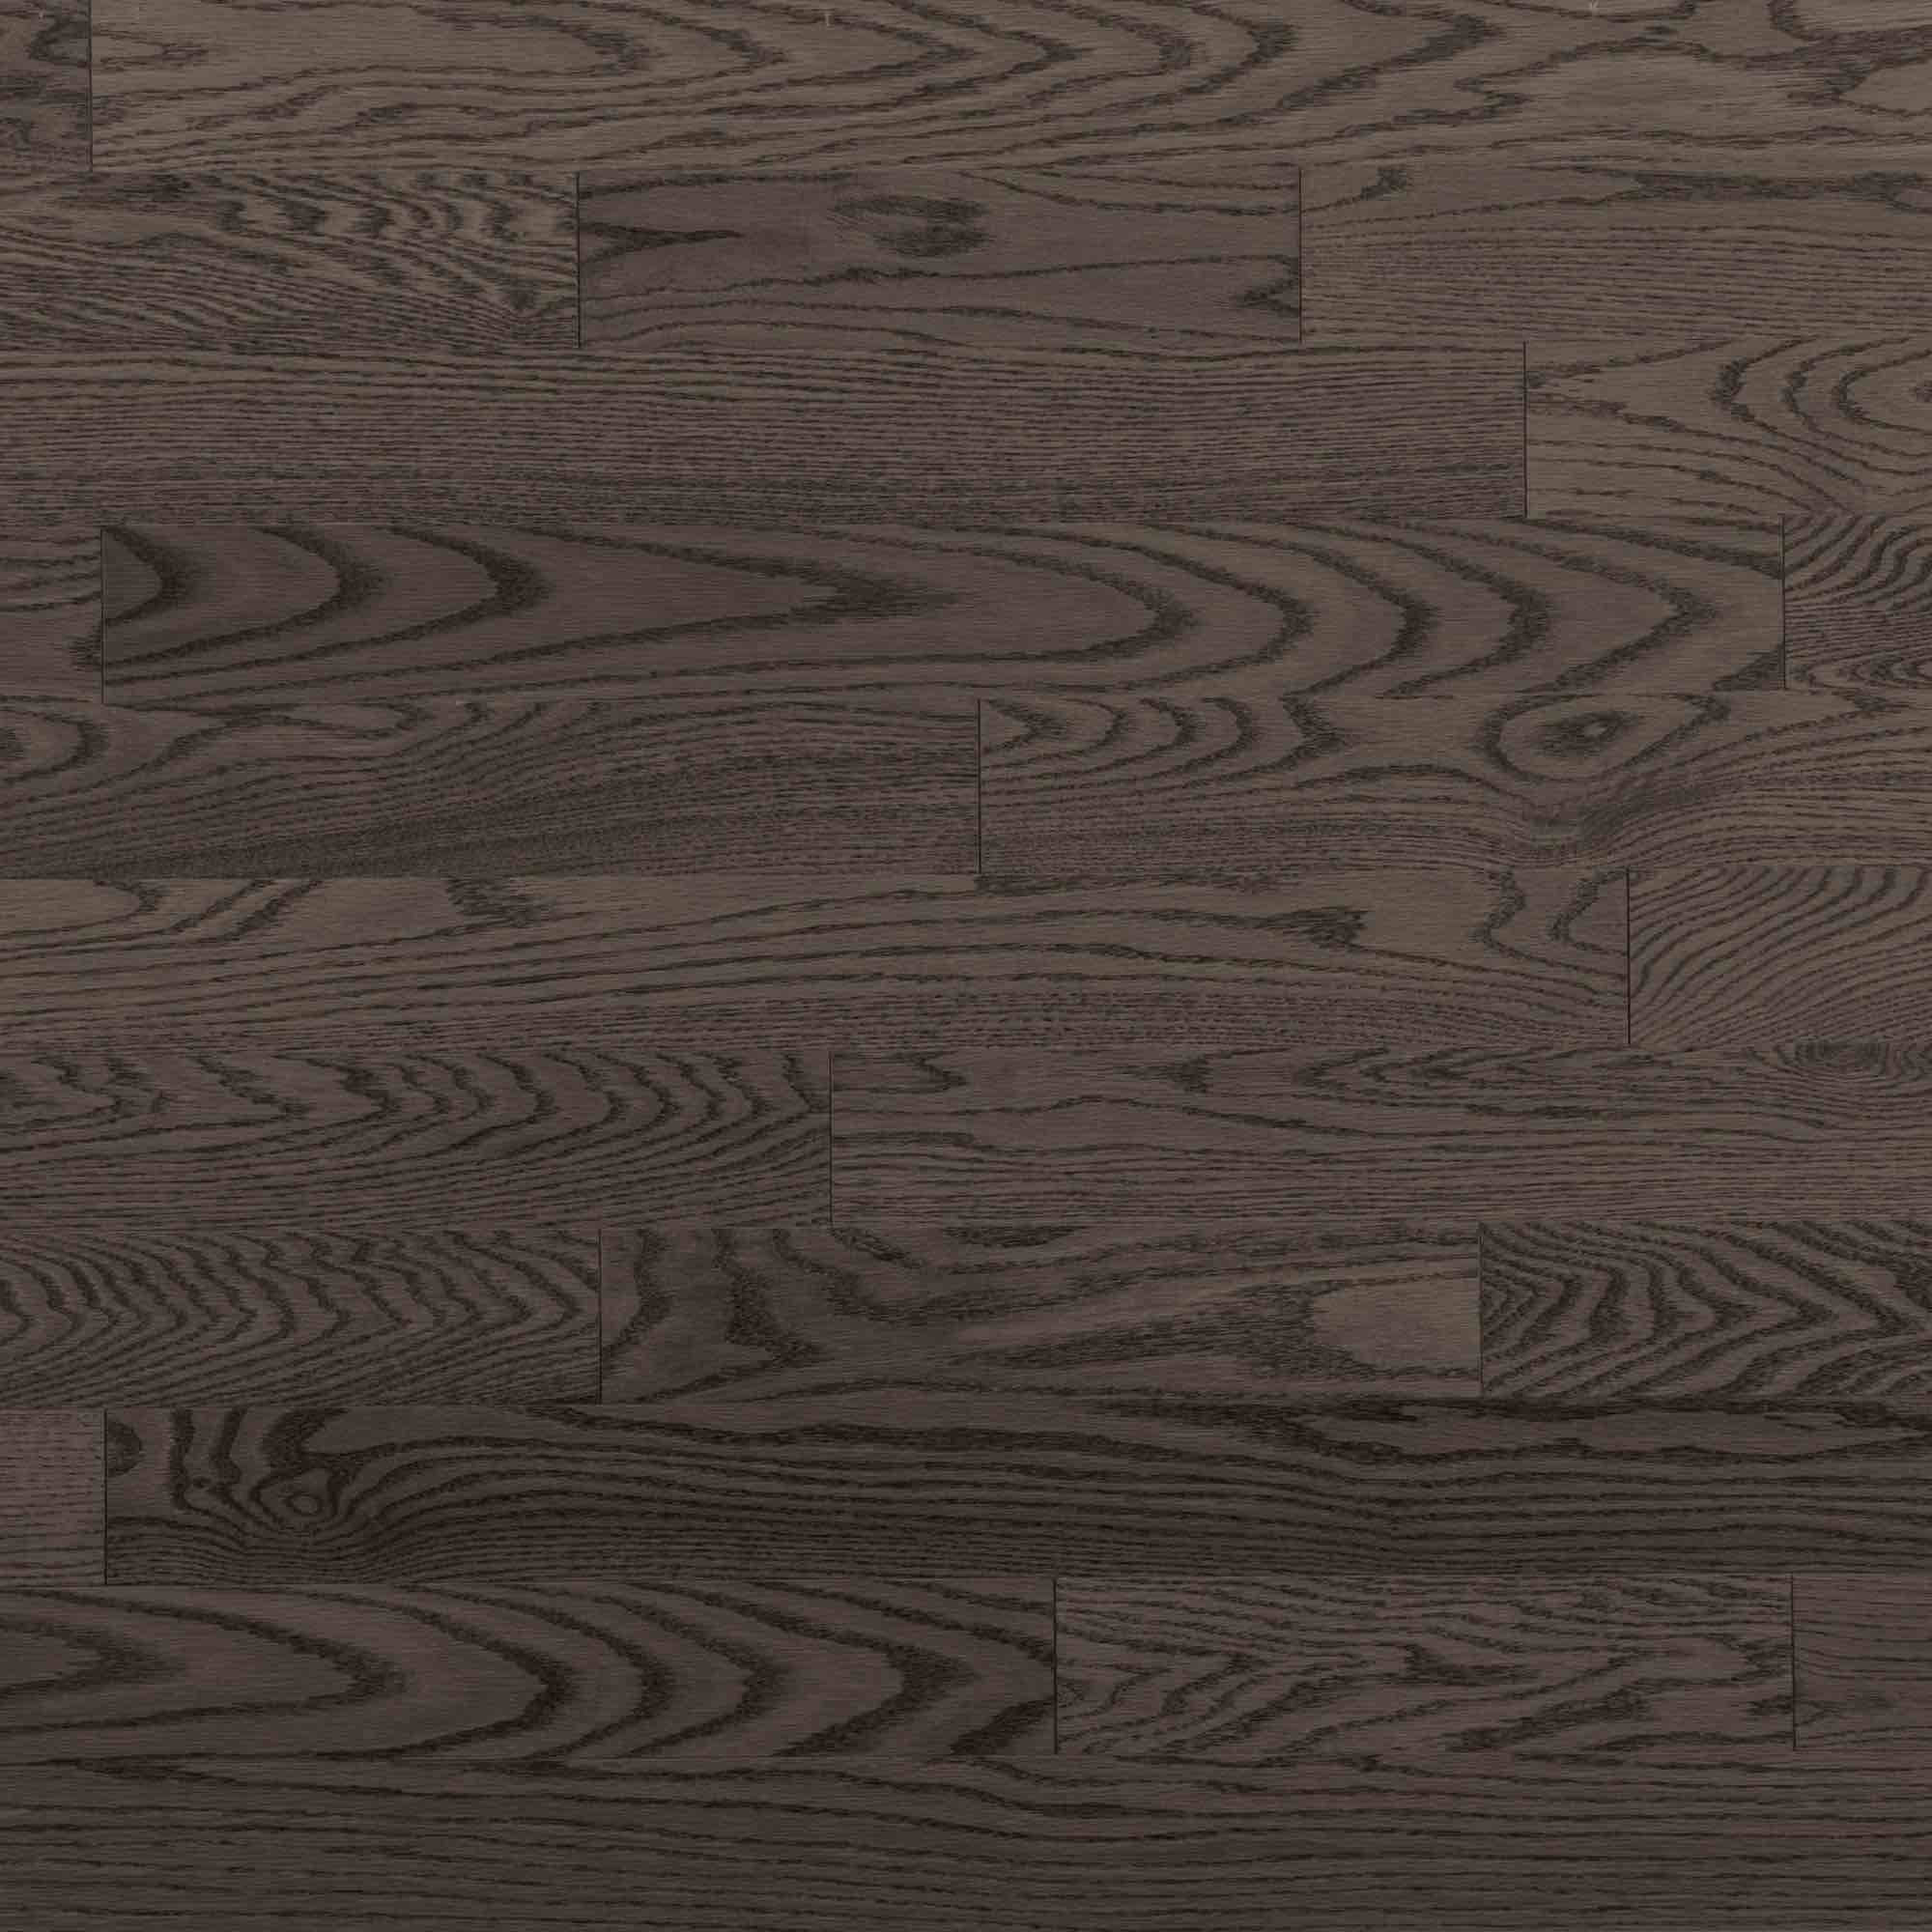 hardwood floor stains 2017 of hardwood westfloors west vancouver hardwood flooring carpet regarding featured hardwoods red oak charcoal